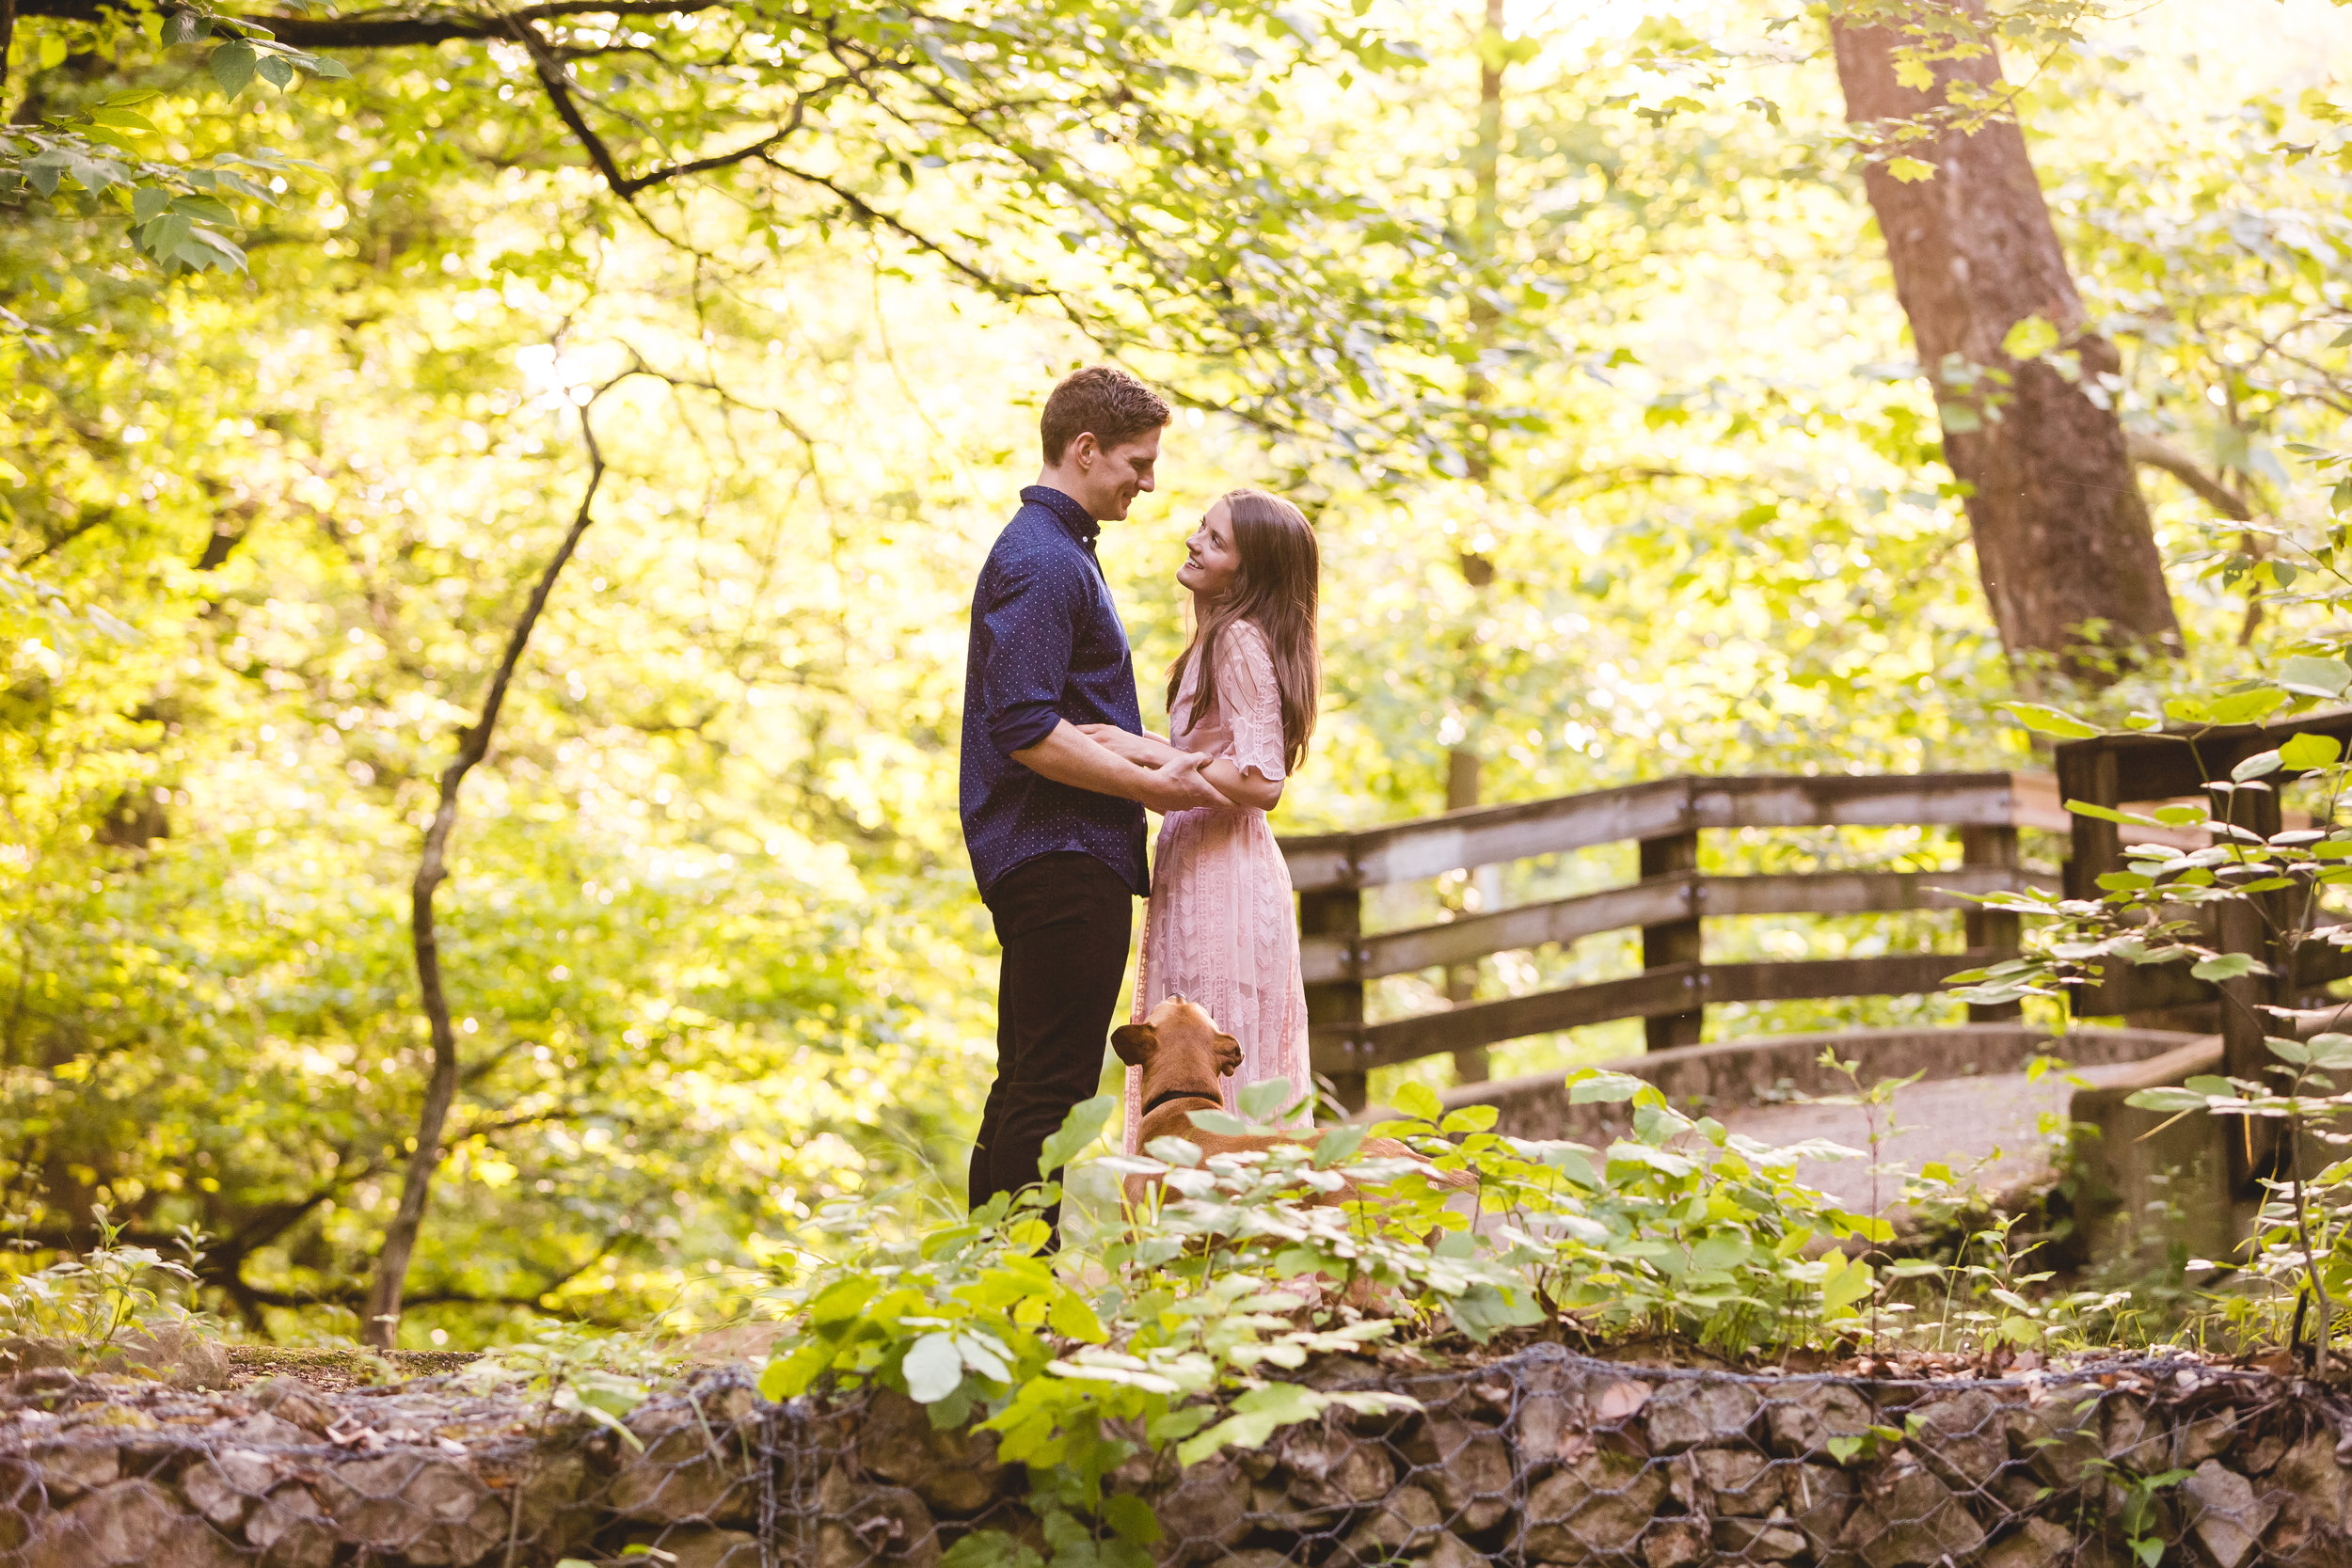 michael and kelsey get engaged in glen echo park with a bridge and their dog in a storybook setting columbus